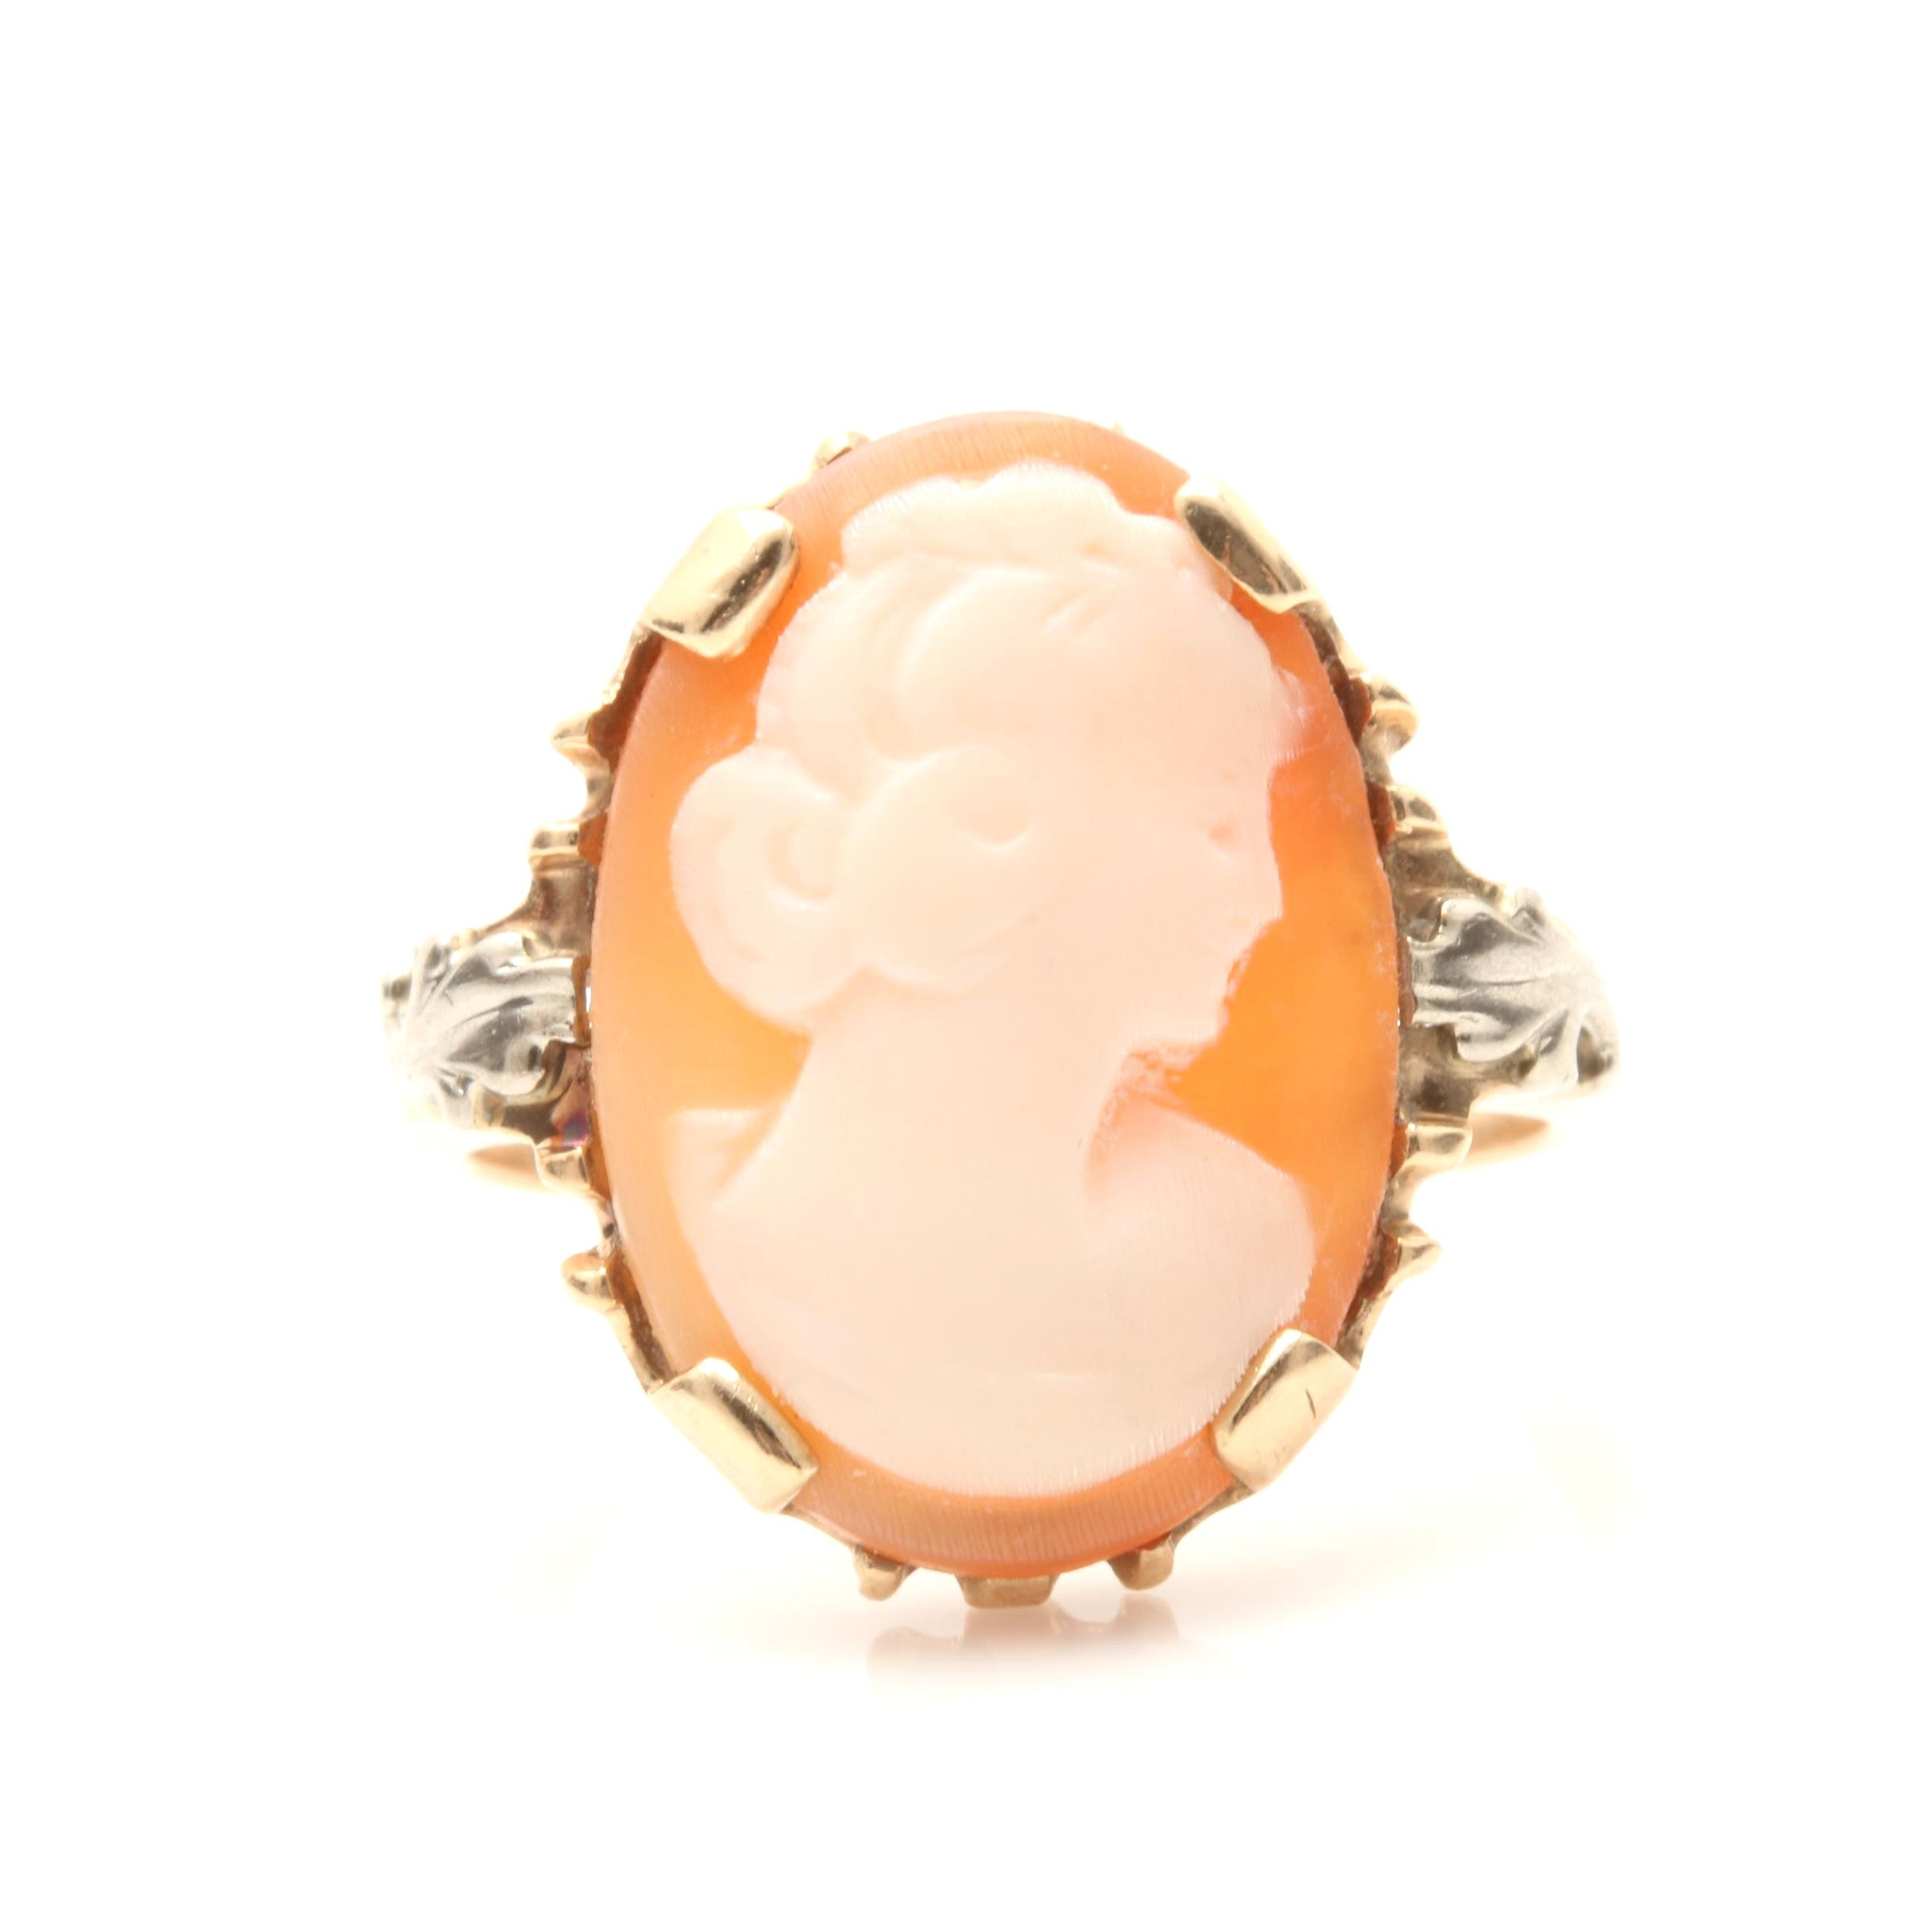 10K Yellow Gold Shell Cameo Ring